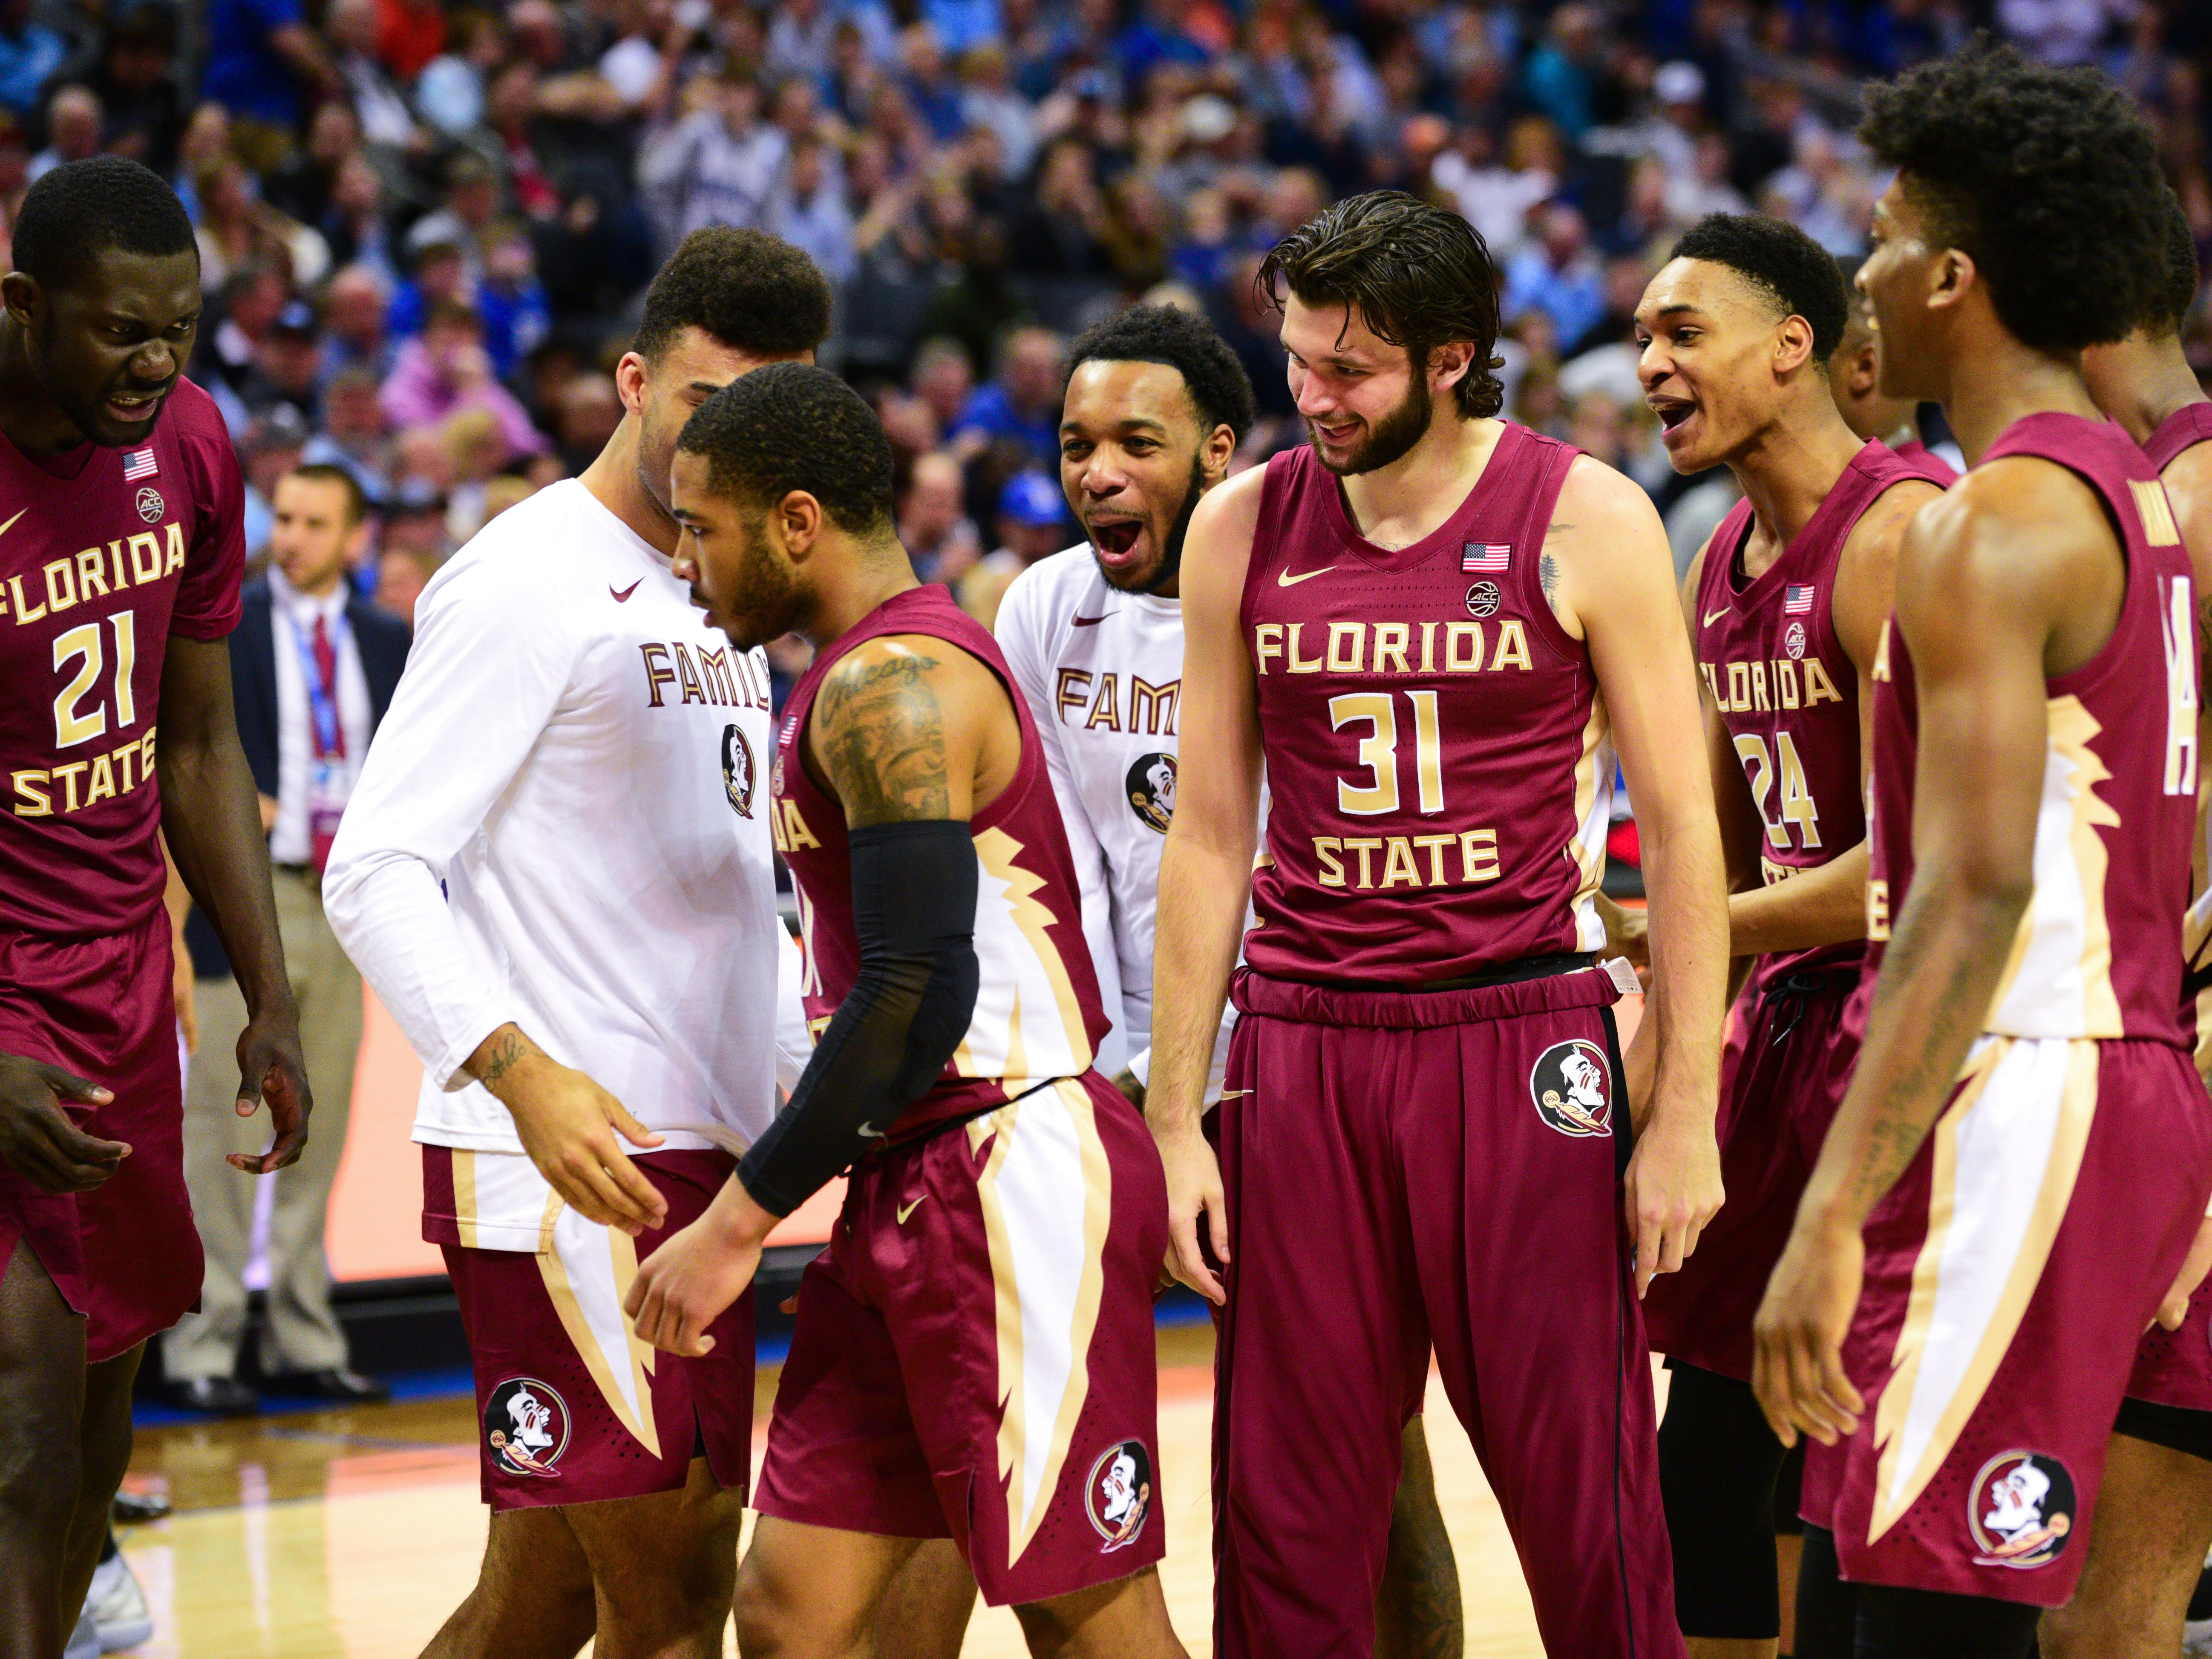 Senior guard David Nichols is greeted with celebration from the Florida State bench at the start of a timeout during the second half of the ACC Tournament Semifinals at the Spectrum Center in Charlotte on Friday.